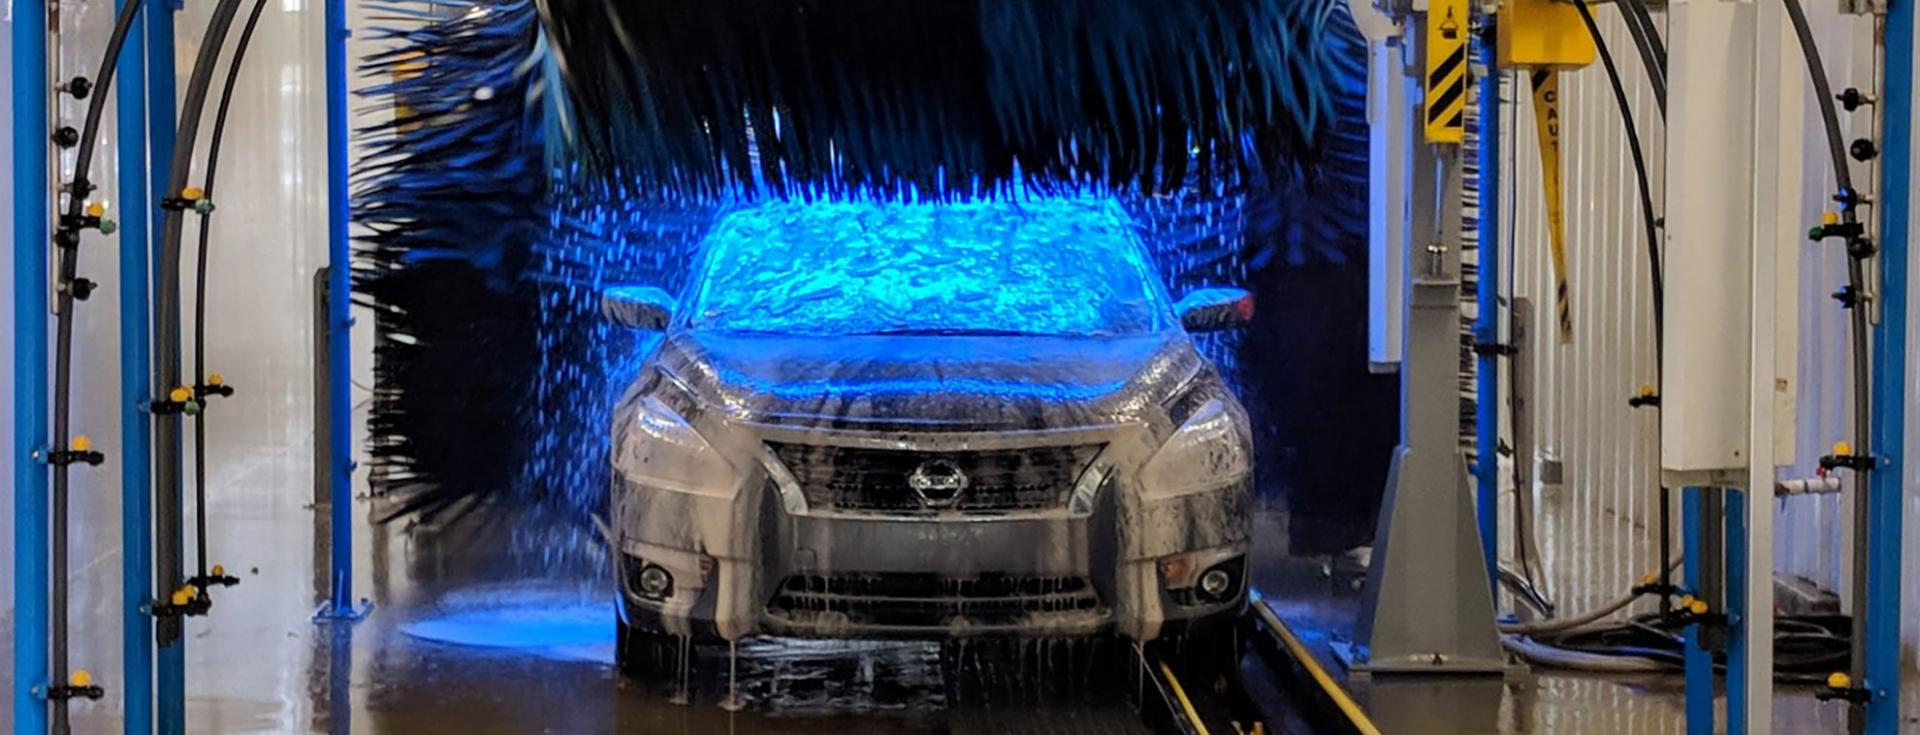 Noise control Solutions for carwash